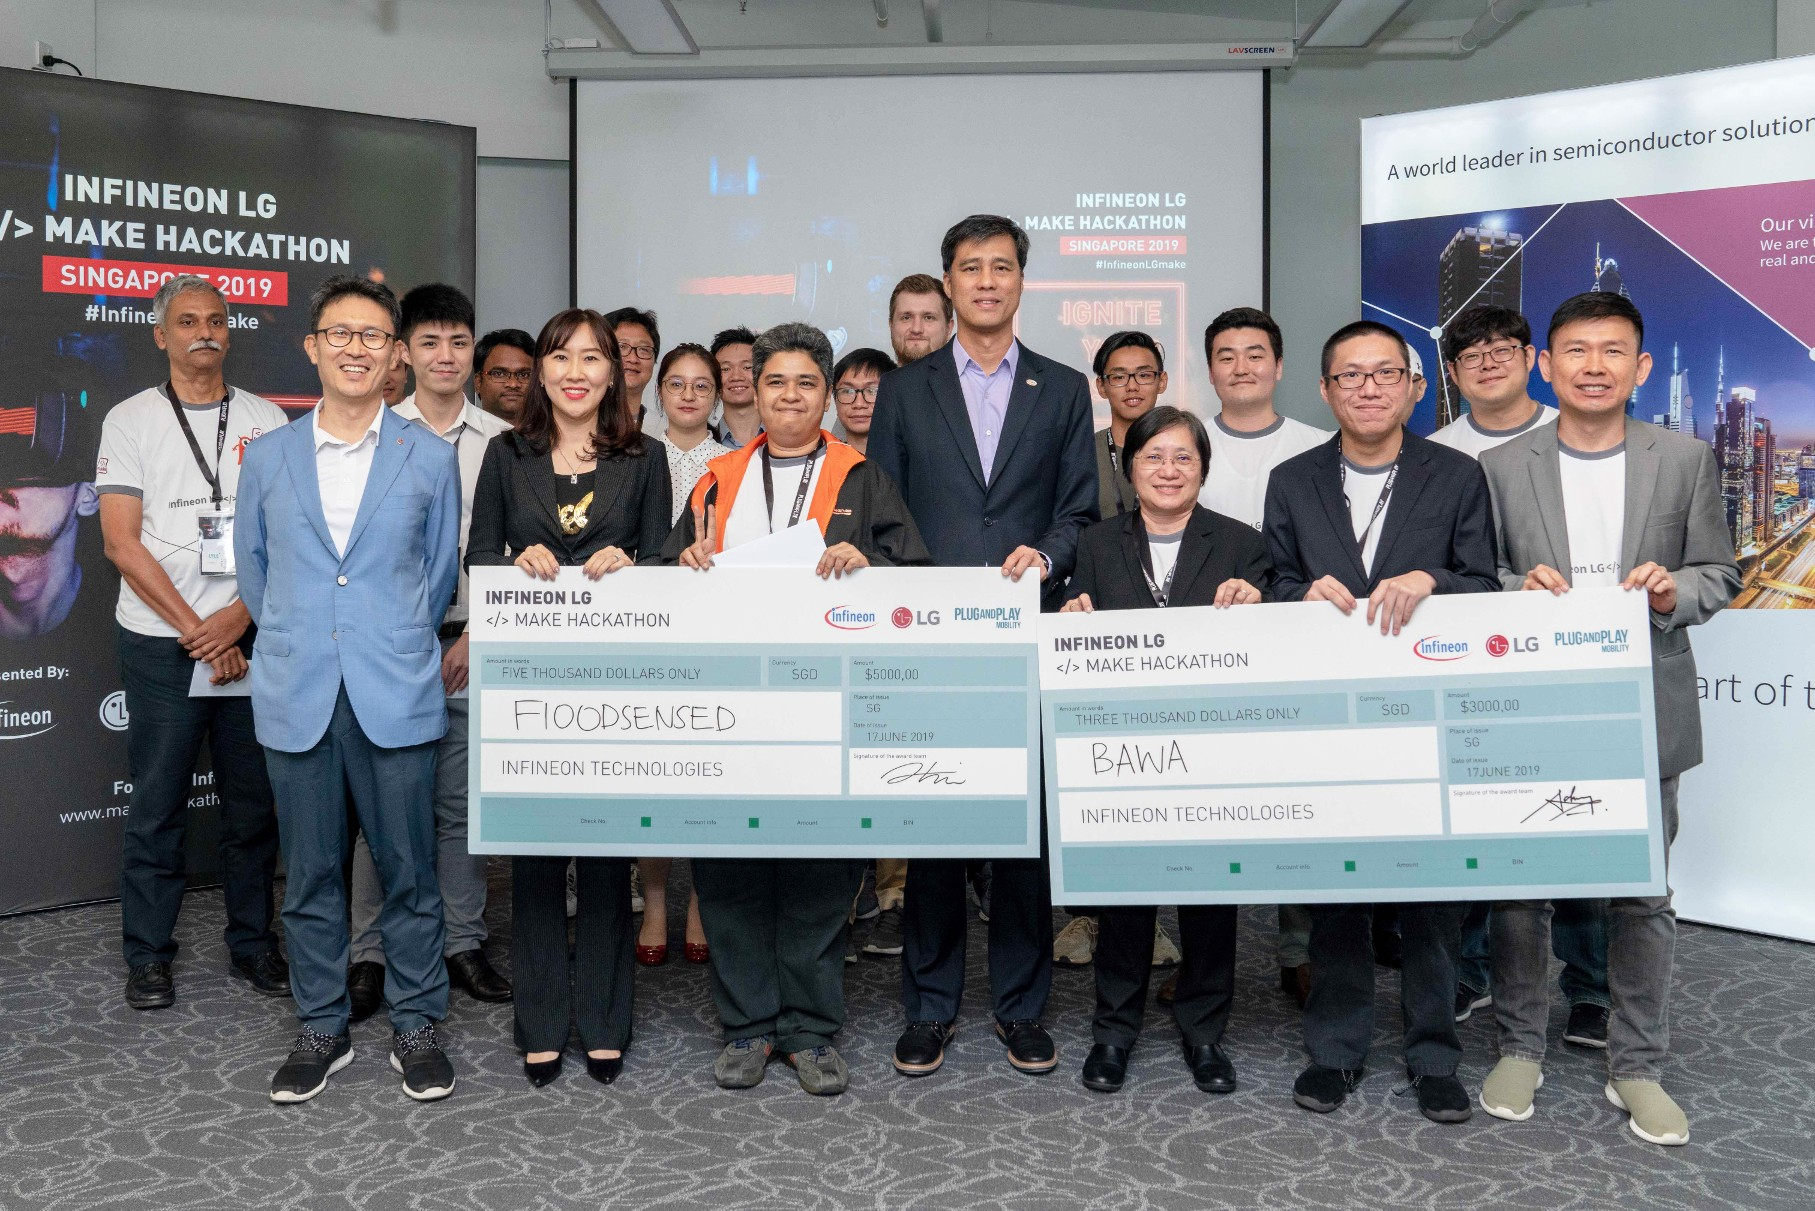 "Delegates from Infineon Technologies and LG Electronics at the inaugural event ""Infineon LG Make Hackathon"" in Singapore."